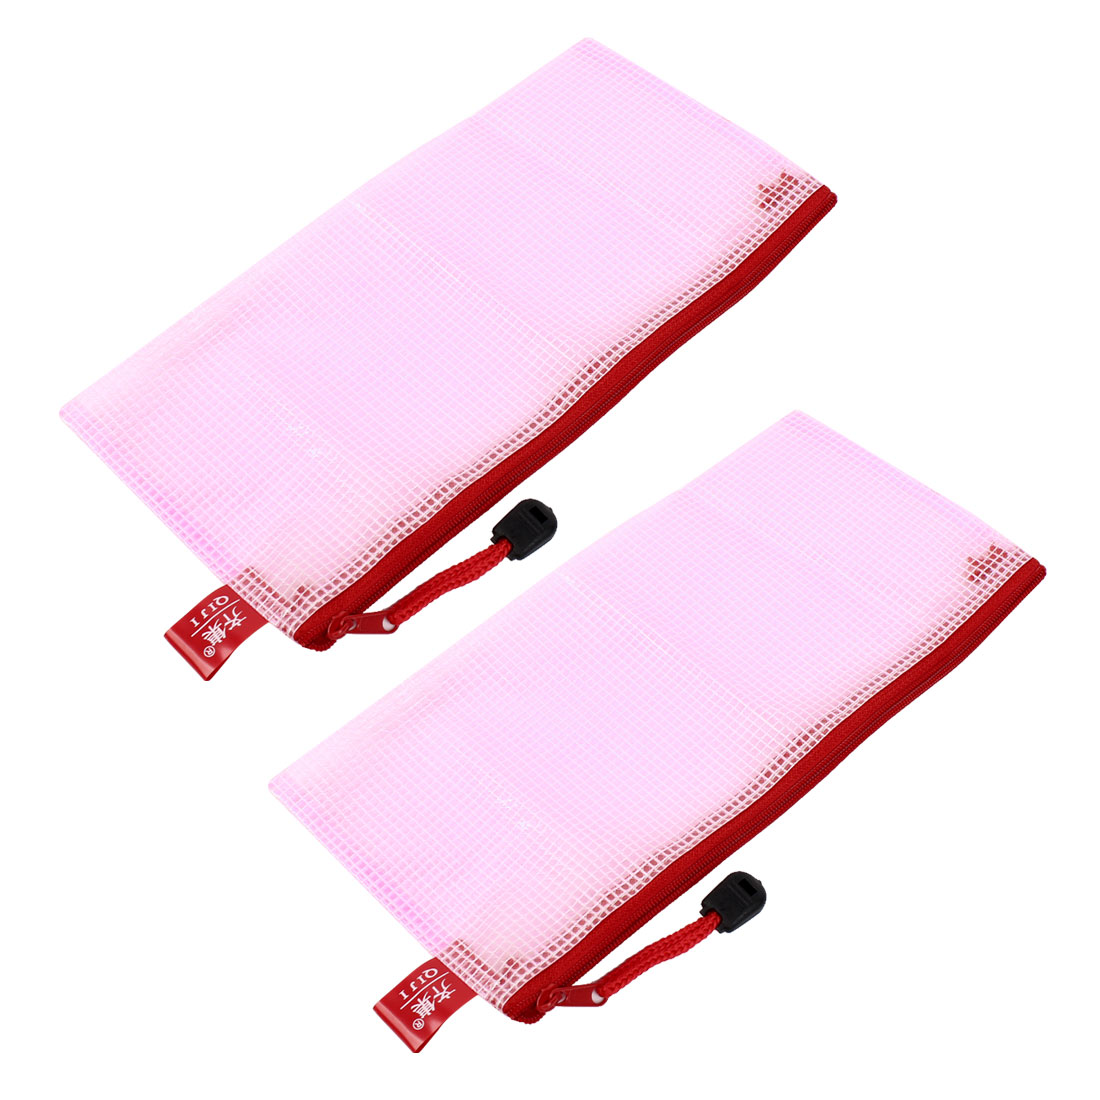 2 Pcs Mesh Design A6 Paper Pen Holder Zippered PVC File Folder Bags Pink